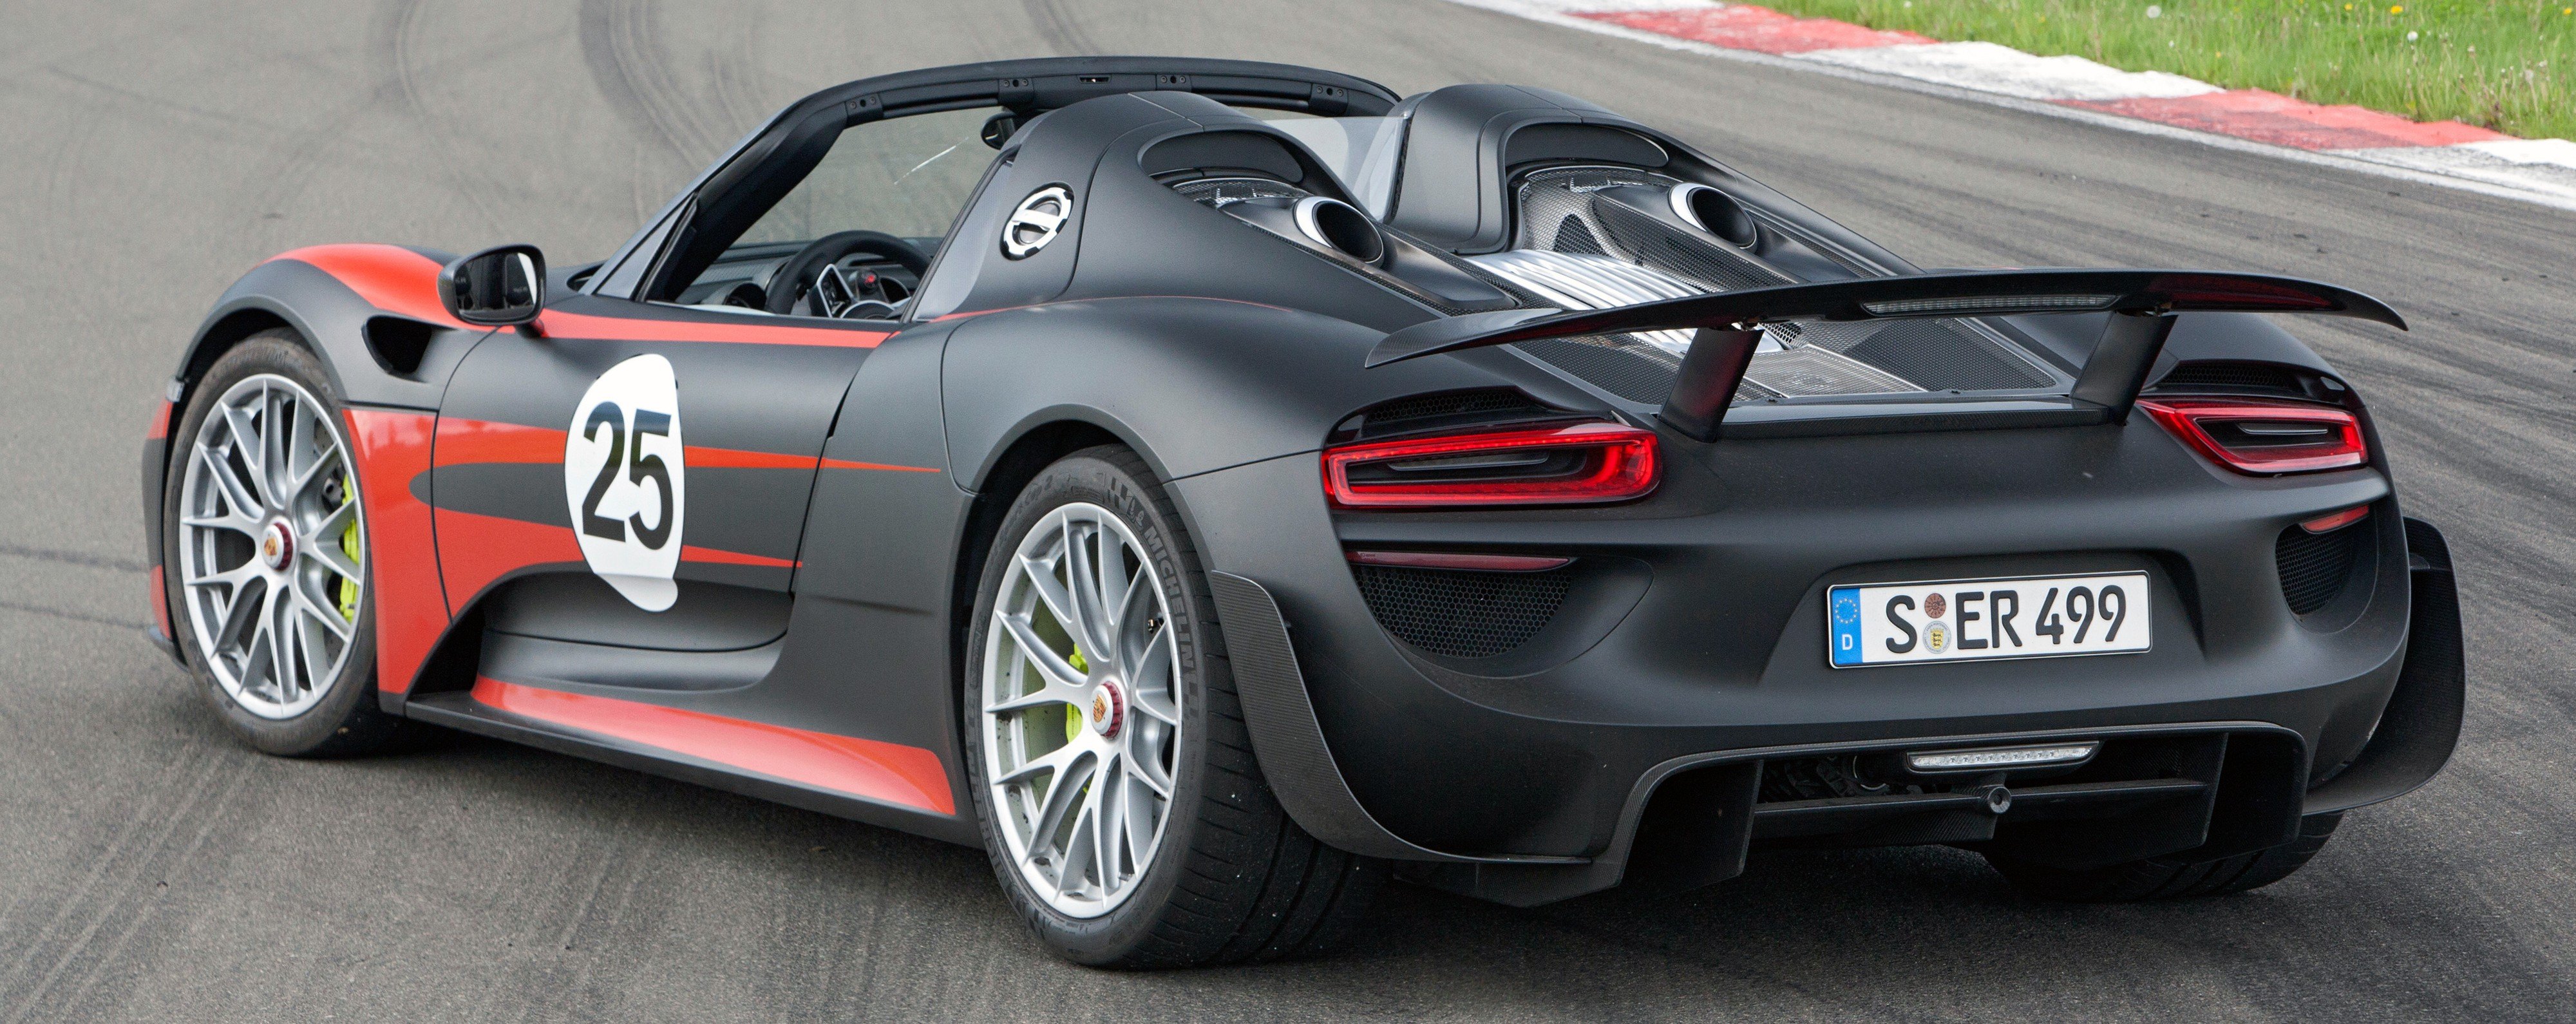 Porsche >> Porsche 918 Spyder: 887 hp, 1,275 Nm, 340 km/h! Paul Tan - Image 175027